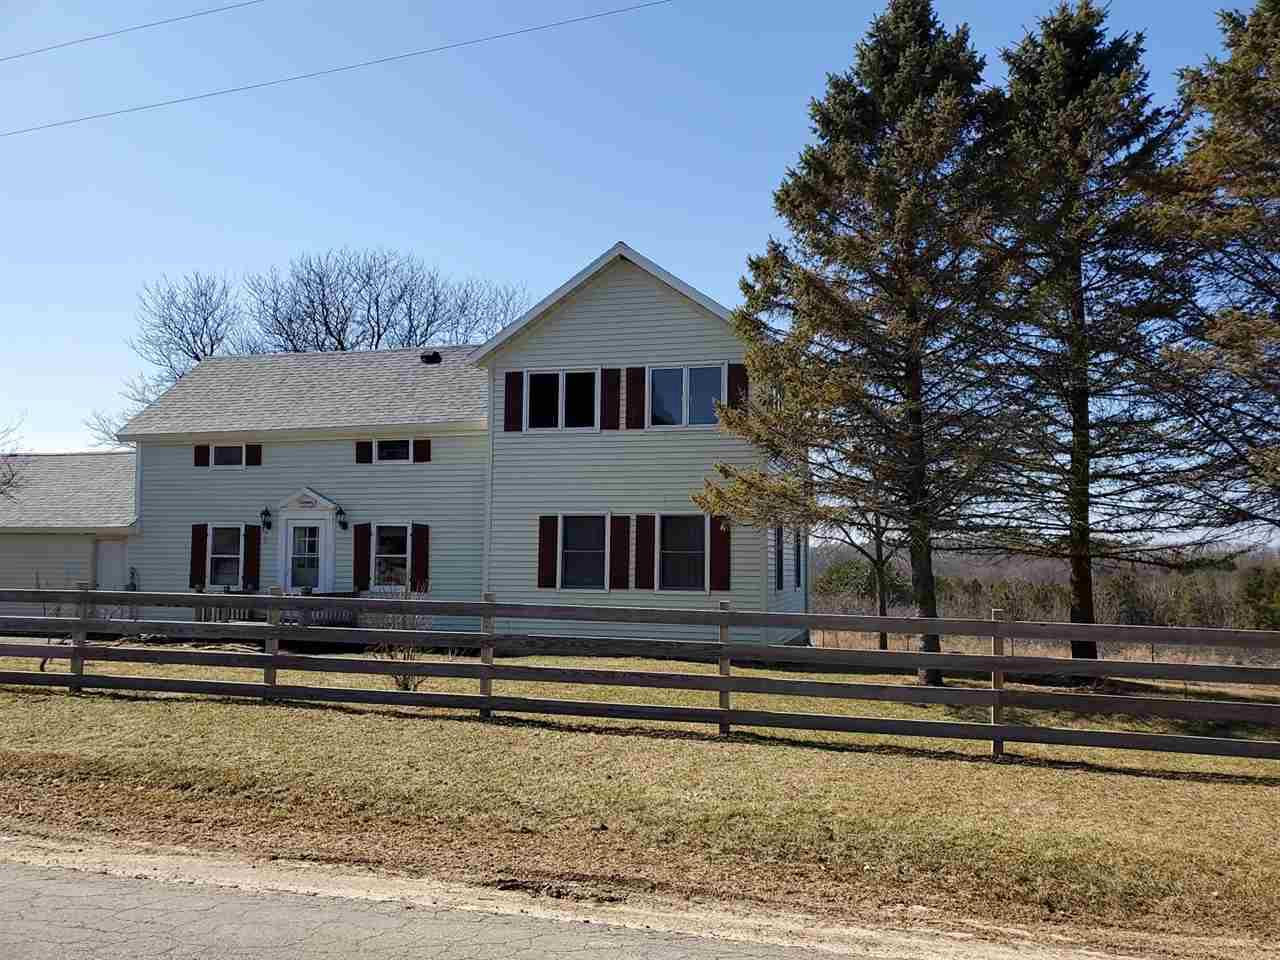 Motivated!!!Country living with incredible views!  Bring your horse and cowboy hat! NEW ROOF in 2020!  3 Bedroom 3 bath home on 4.75 acres!  Mud room, lots of closet space and main floor laundry.  The family room has incredible views of the valley and a deck to enjoy it all!  Attached 2 car garage and 34x50 pole building!  Fruit trees and grape vines!  This property has everything you need to enjoy the country and priceless views.